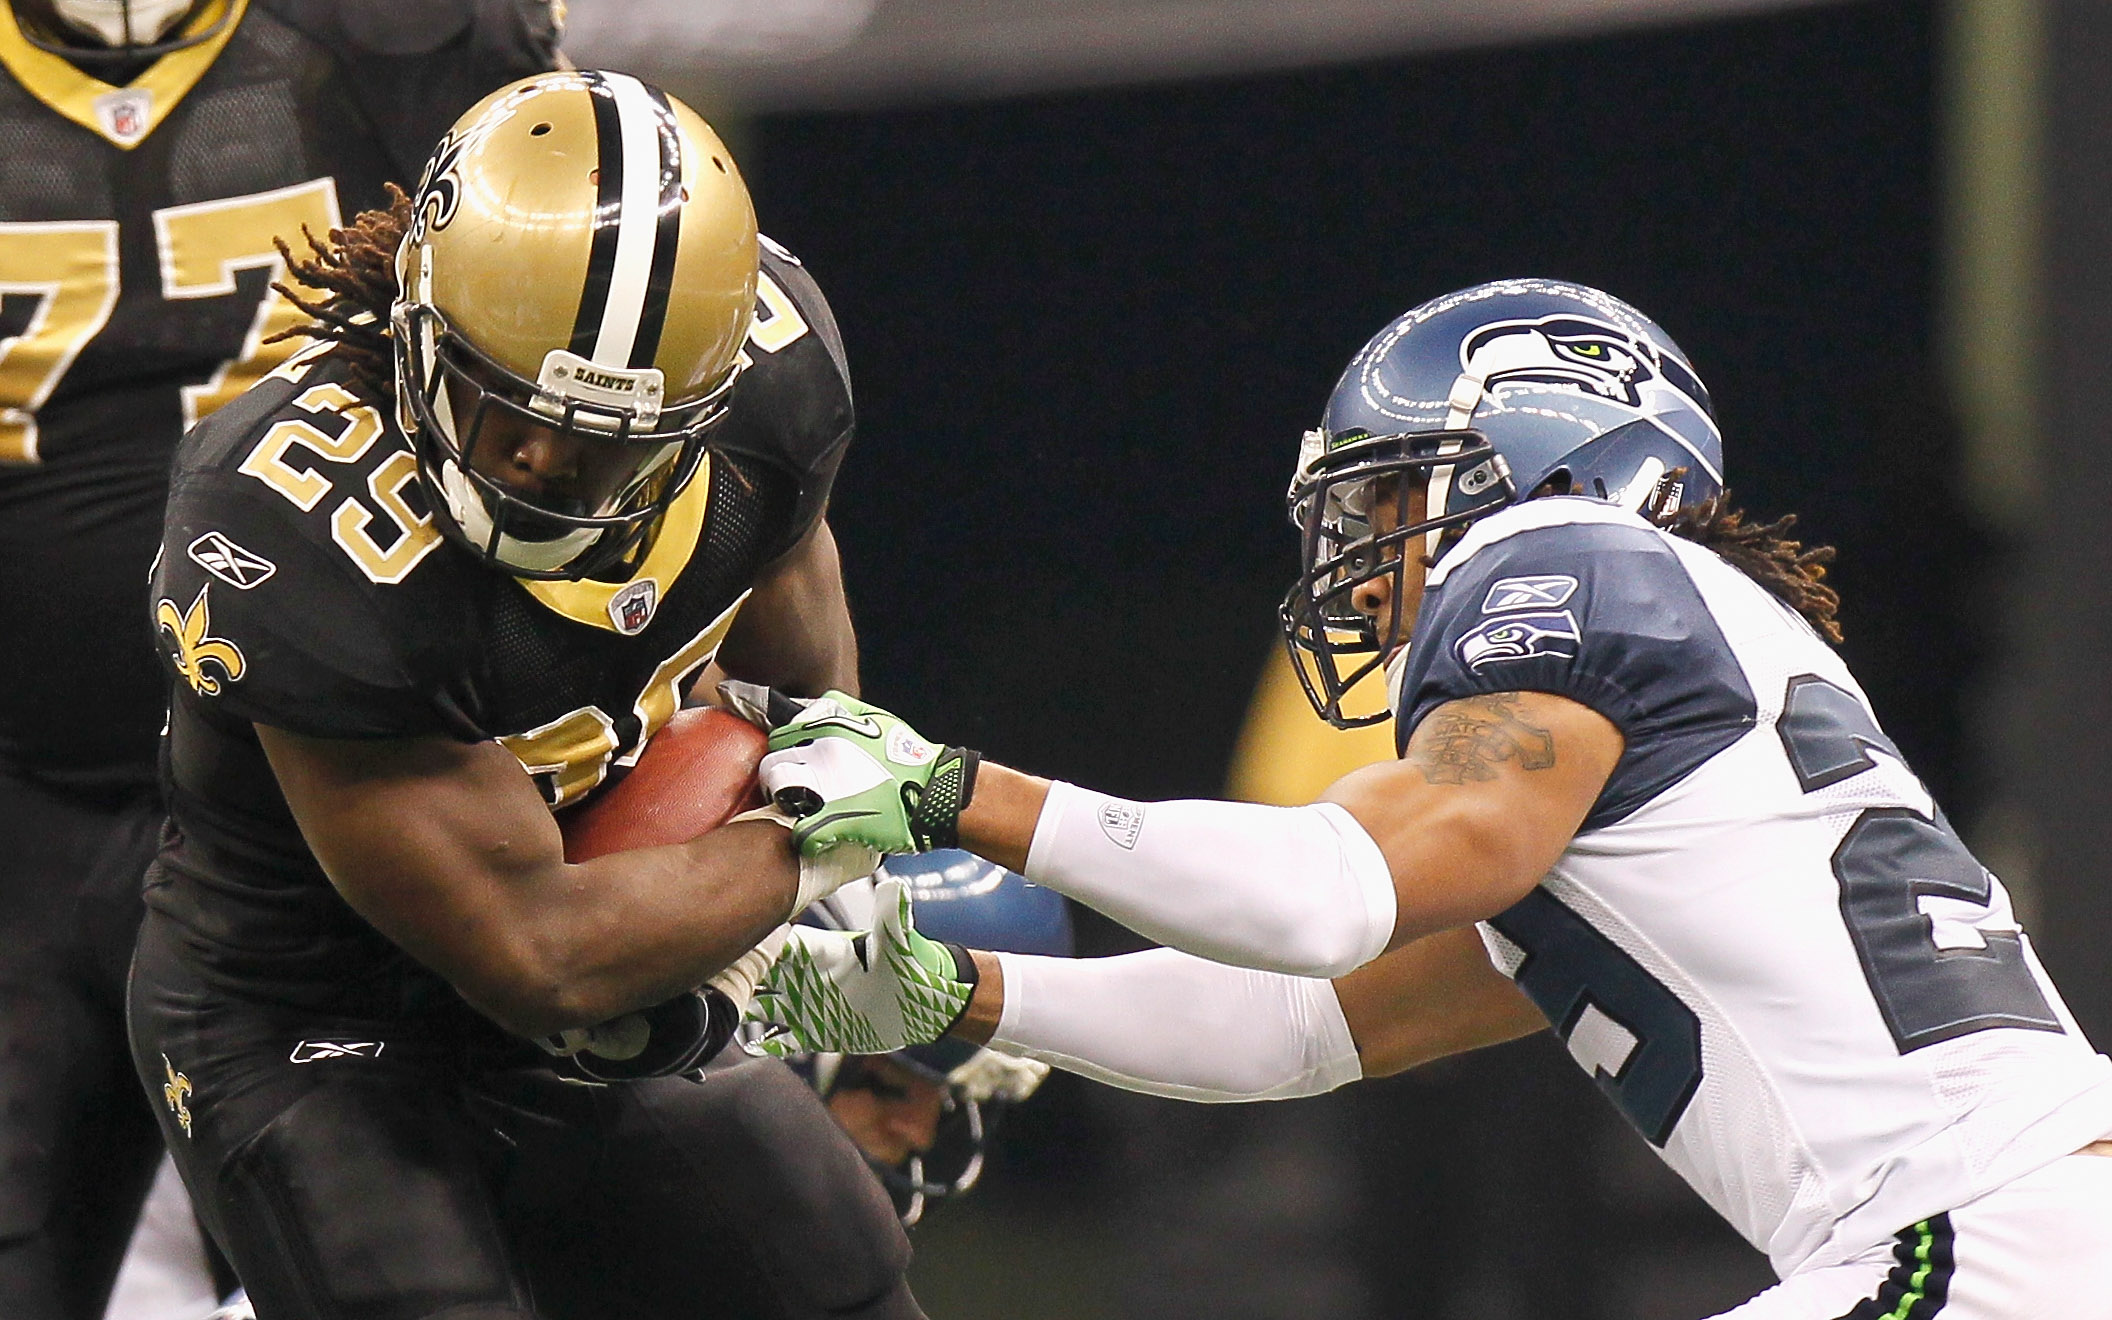 NEW ORLEANS - NOVEMBER 21:  Earl Thomas #29 of the Seattle Seahawks tries to strip the ball from Chris Ivory #29 of the New Orleans Saints at Louisiana Superdome on November 21, 2010 in New Orleans, Louisiana.  (Photo by Kevin C. Cox/Getty Images)